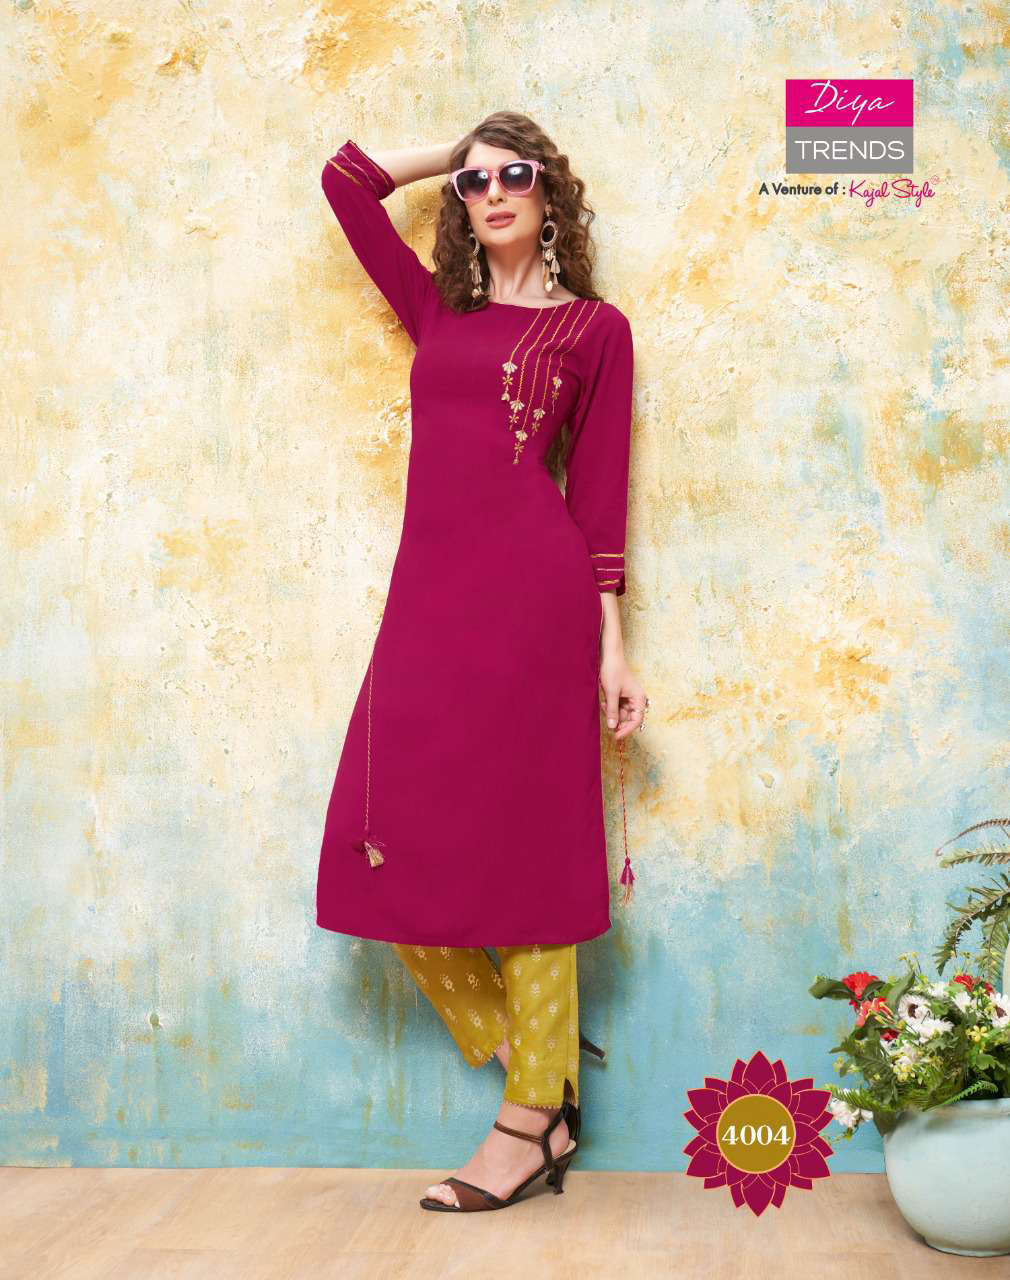 Diya Trends Forever Vol 4 by Kajal Style Kurti with Pant Wholesale Catalog 12 Pcs 5 - Diya Trends Forever Vol 4 by Kajal Style Kurti with Pant Wholesale Catalog 12 Pcs